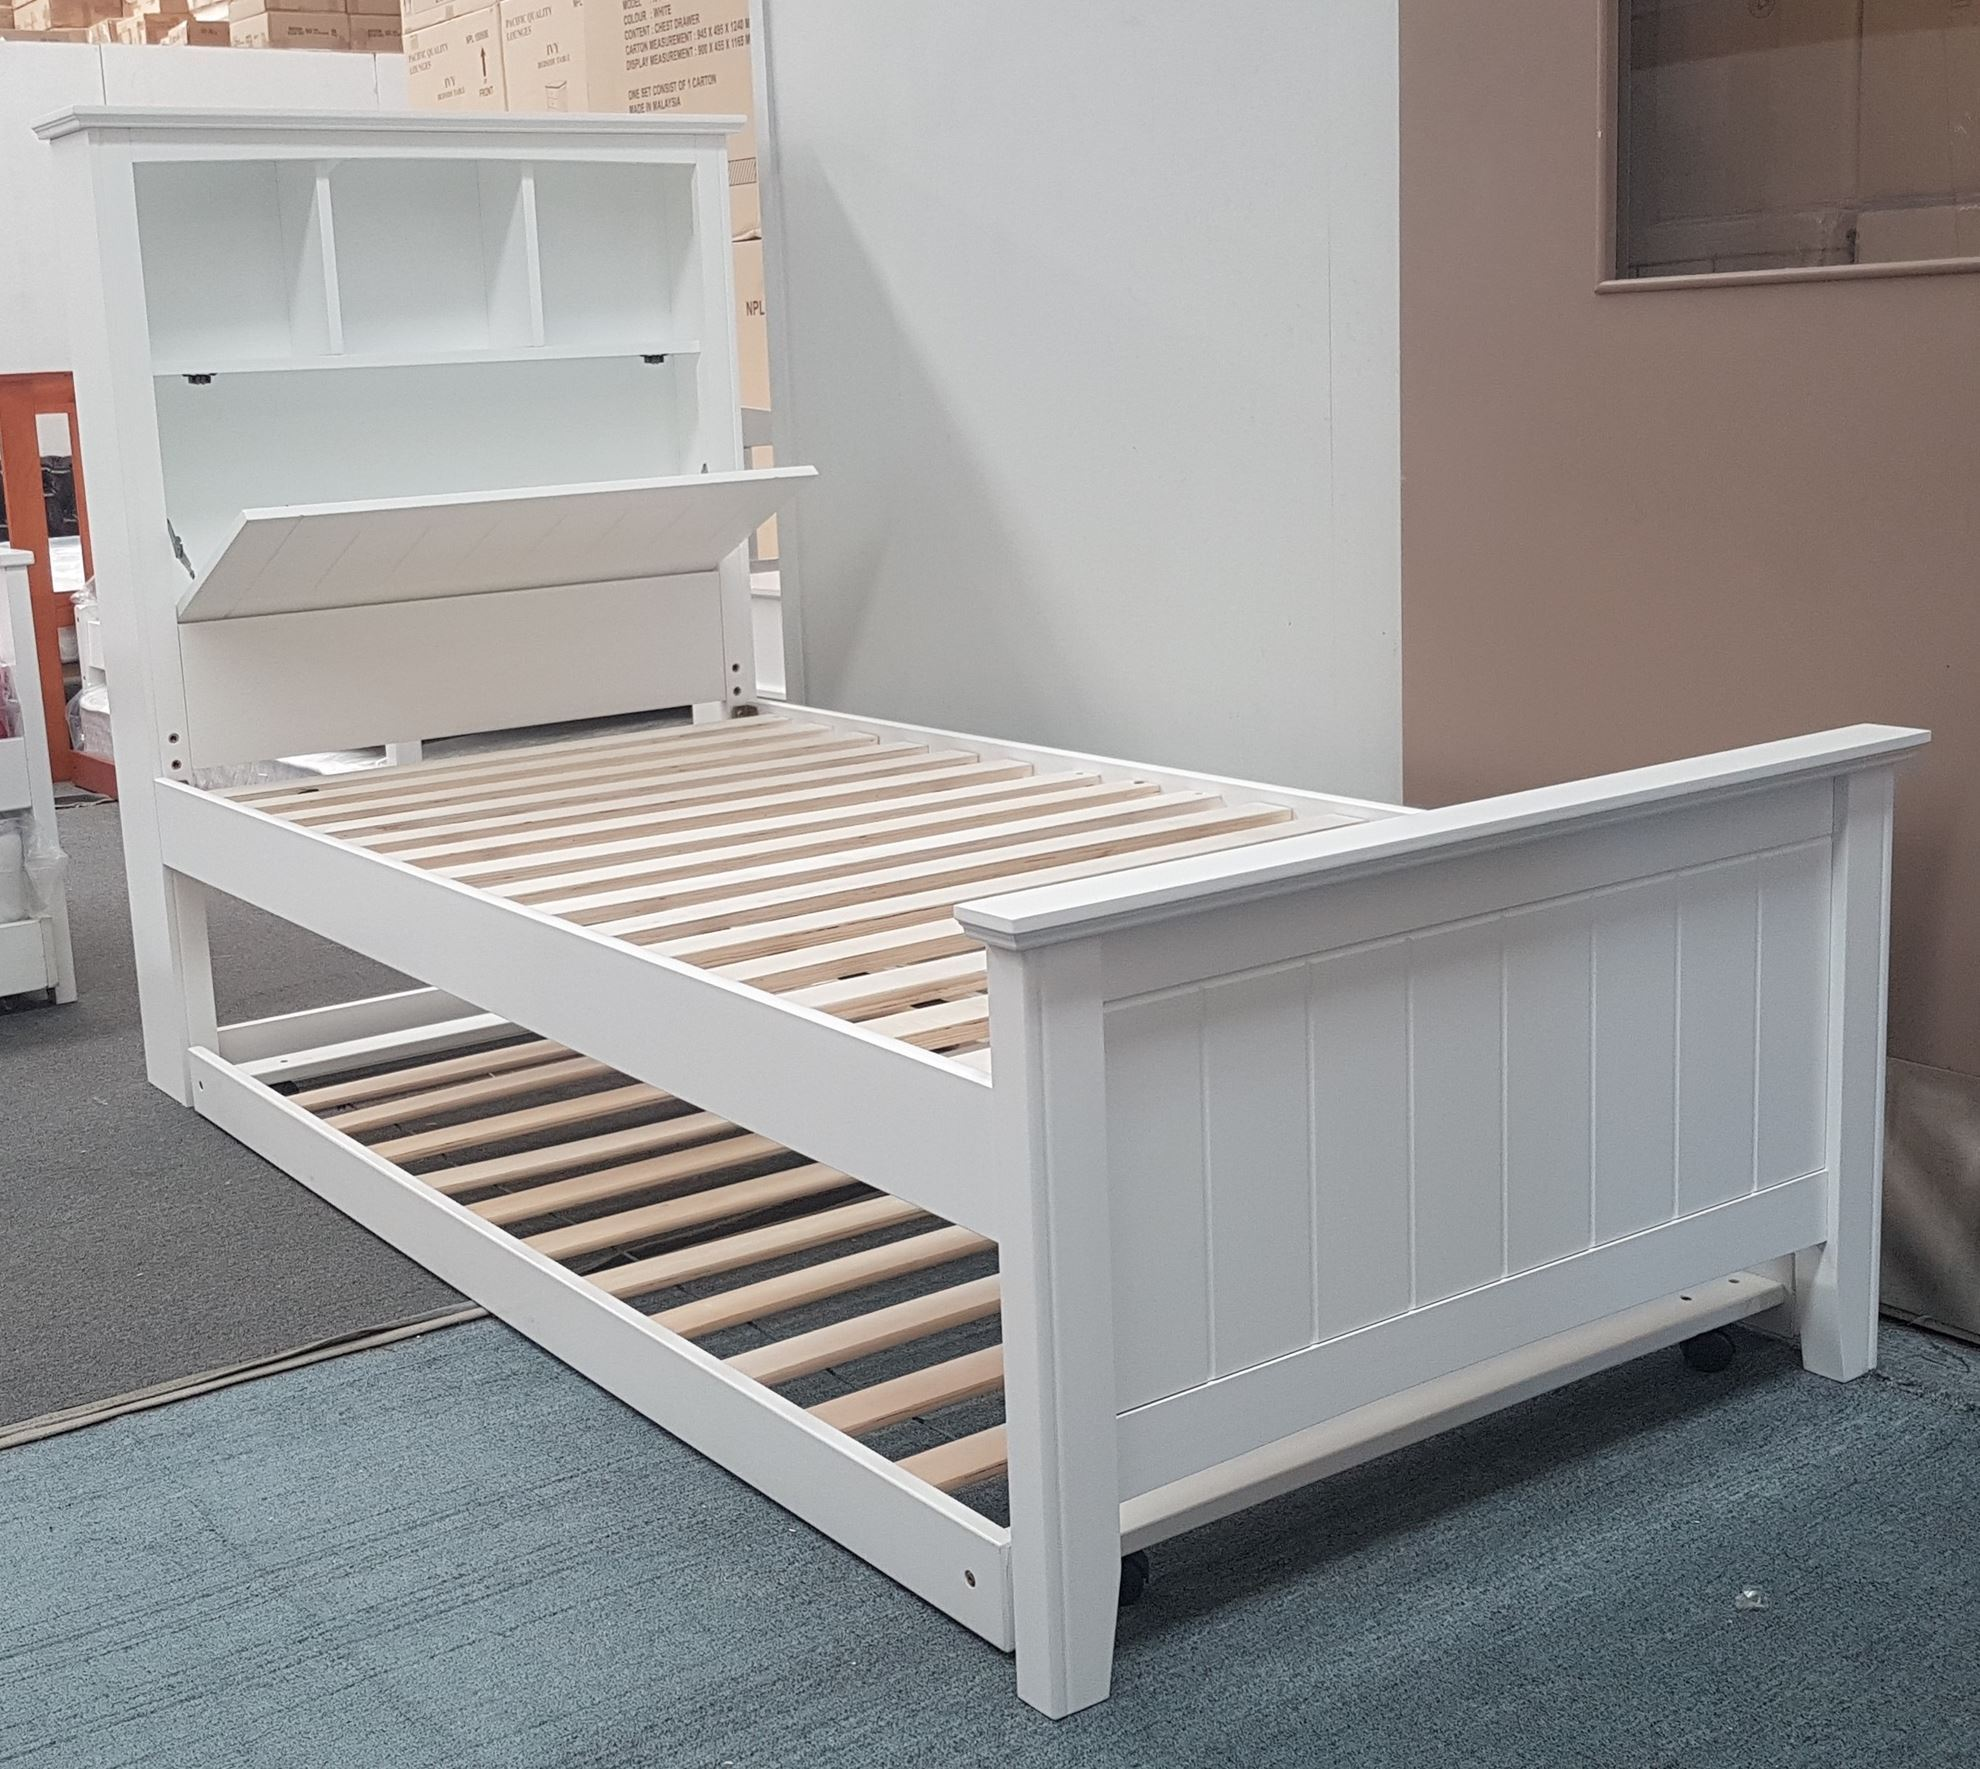 Furniture Place Kaylee Single Bed With Box Headboard Pull Out Trundler Bed On Wheels In White